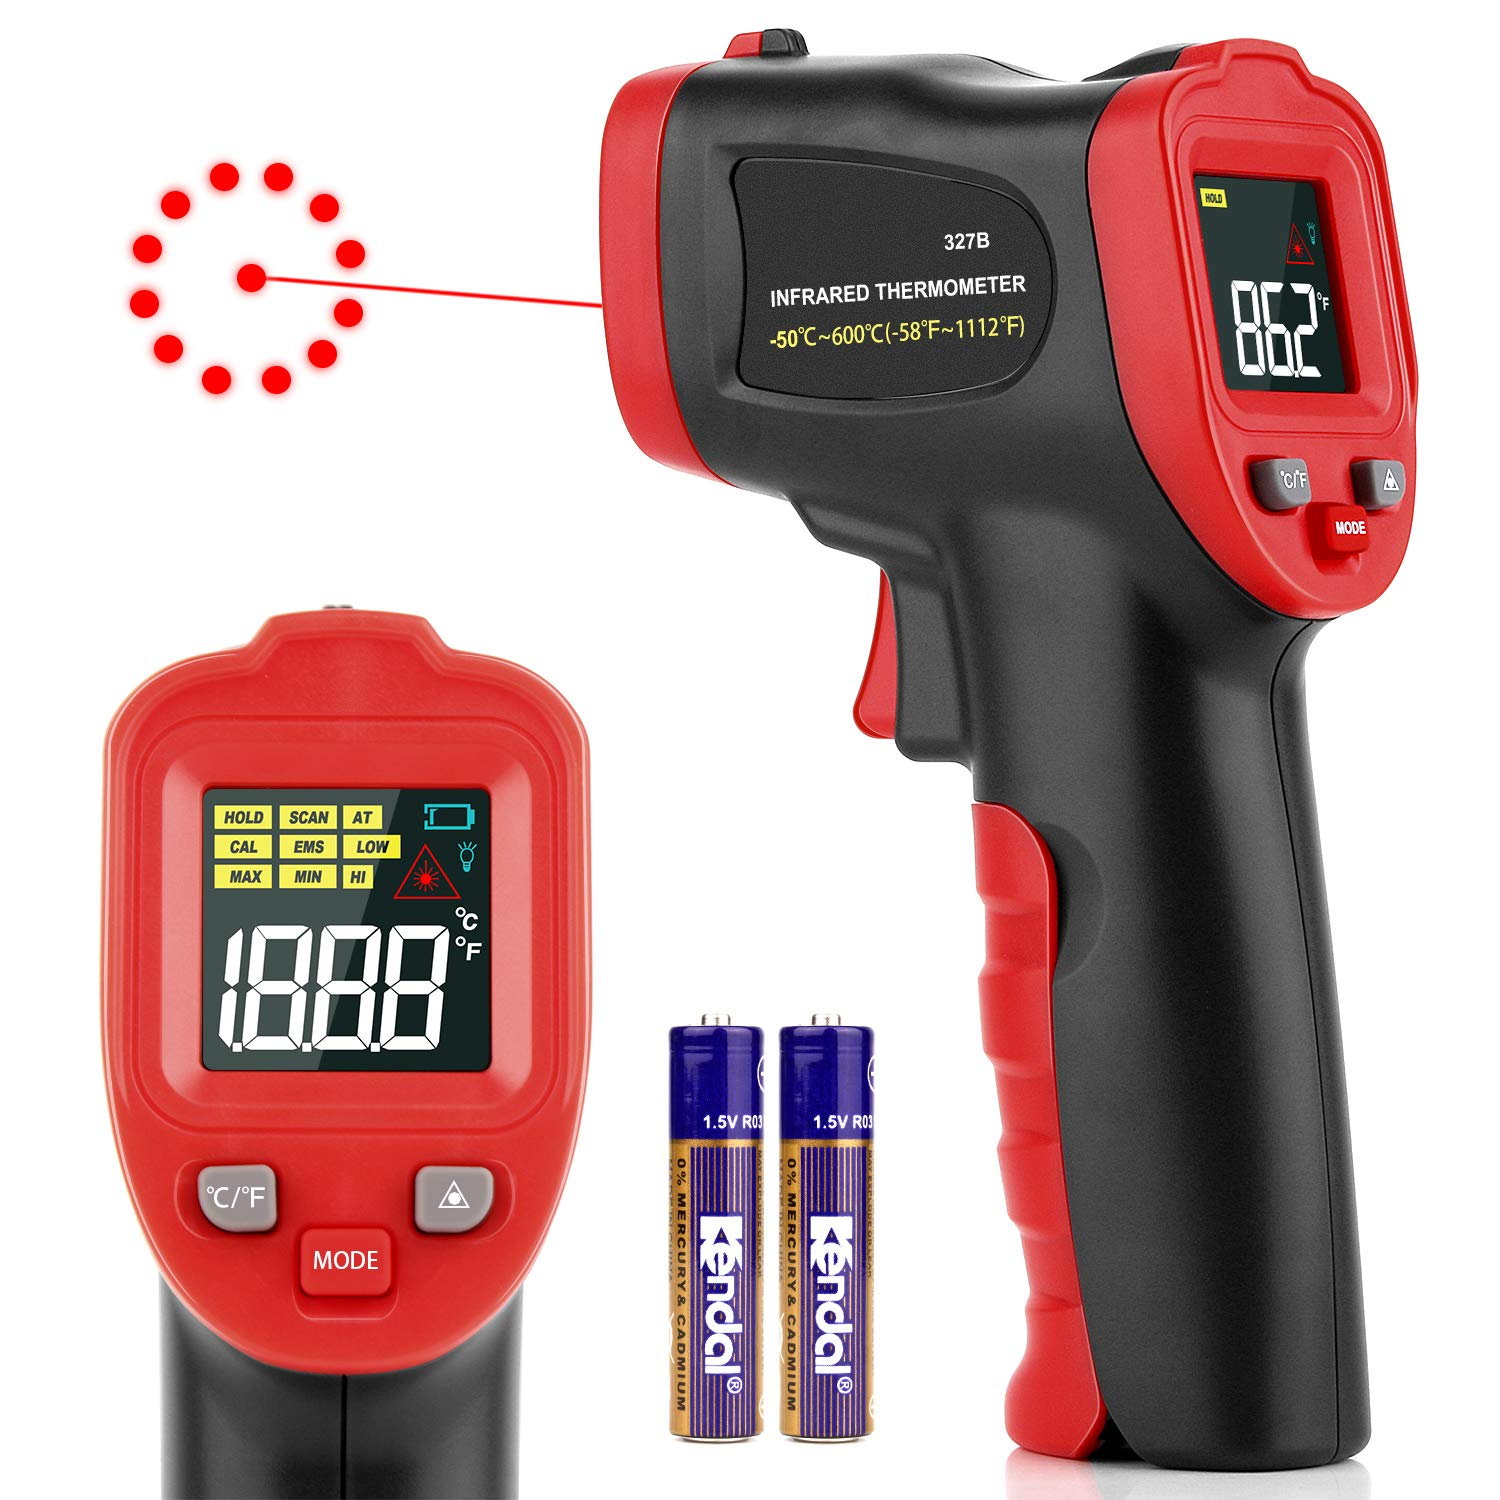 Digital Laser Temperature Gun Infrared Thermometer Gun with Color LED Display, Non-Contact IR Thermometer with Alarm for Kitchen Cooking BBQ Automotive Industrial -58℉~752℉